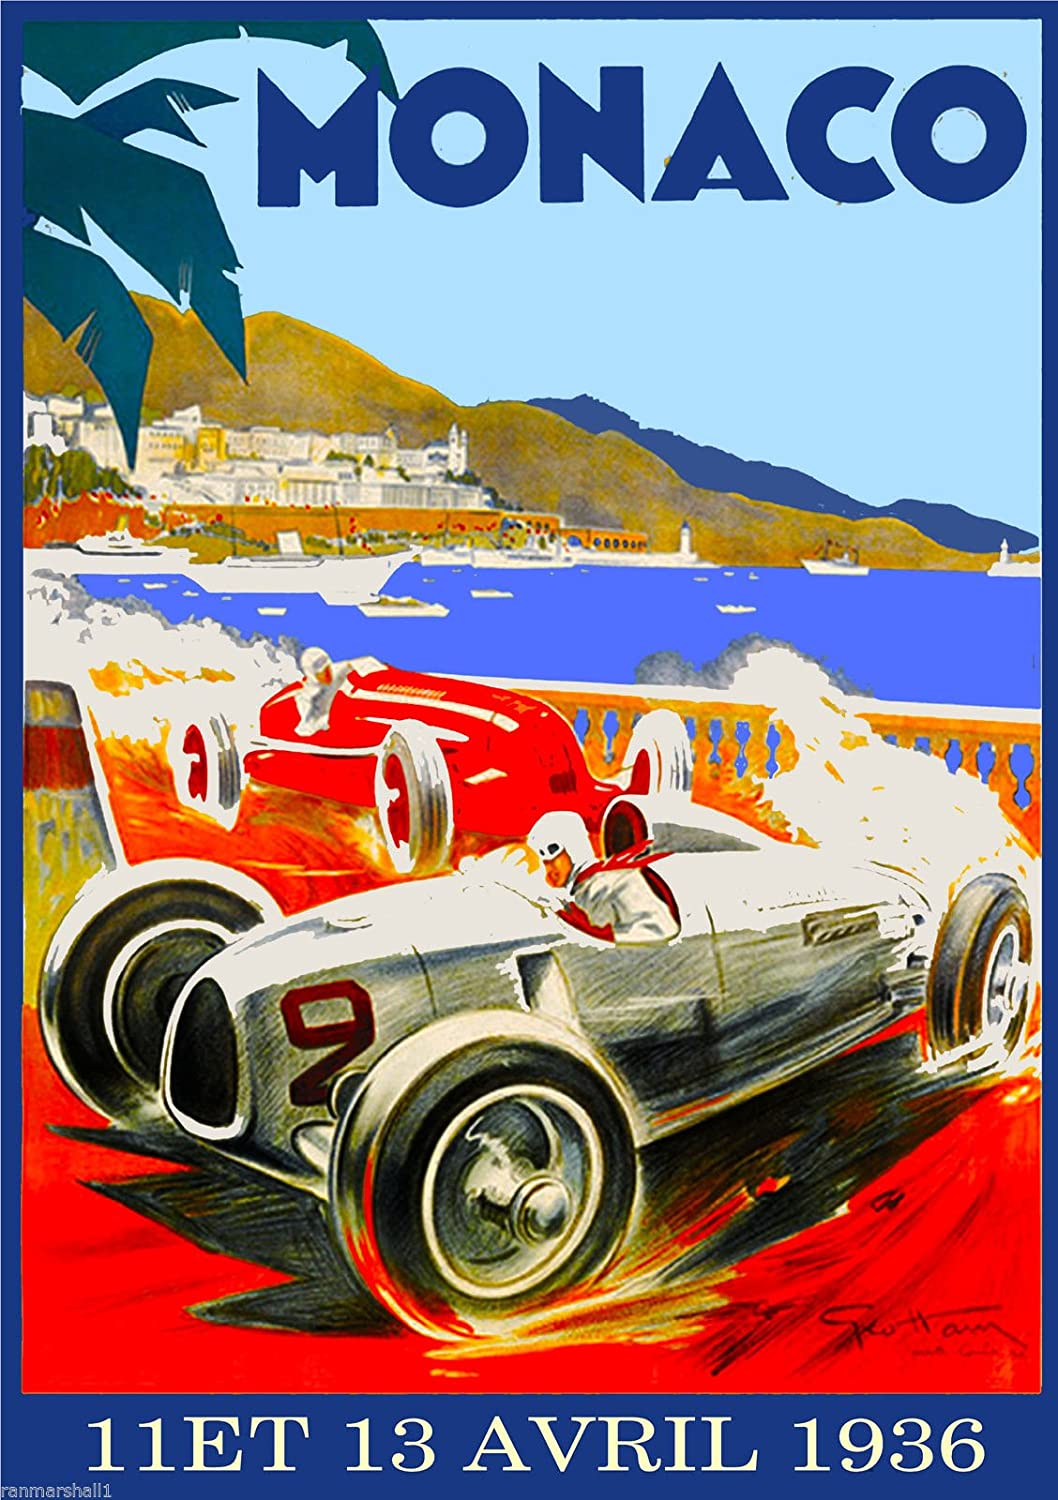 Vintage Monaco 1968 Grand Prix Car Racing Poster